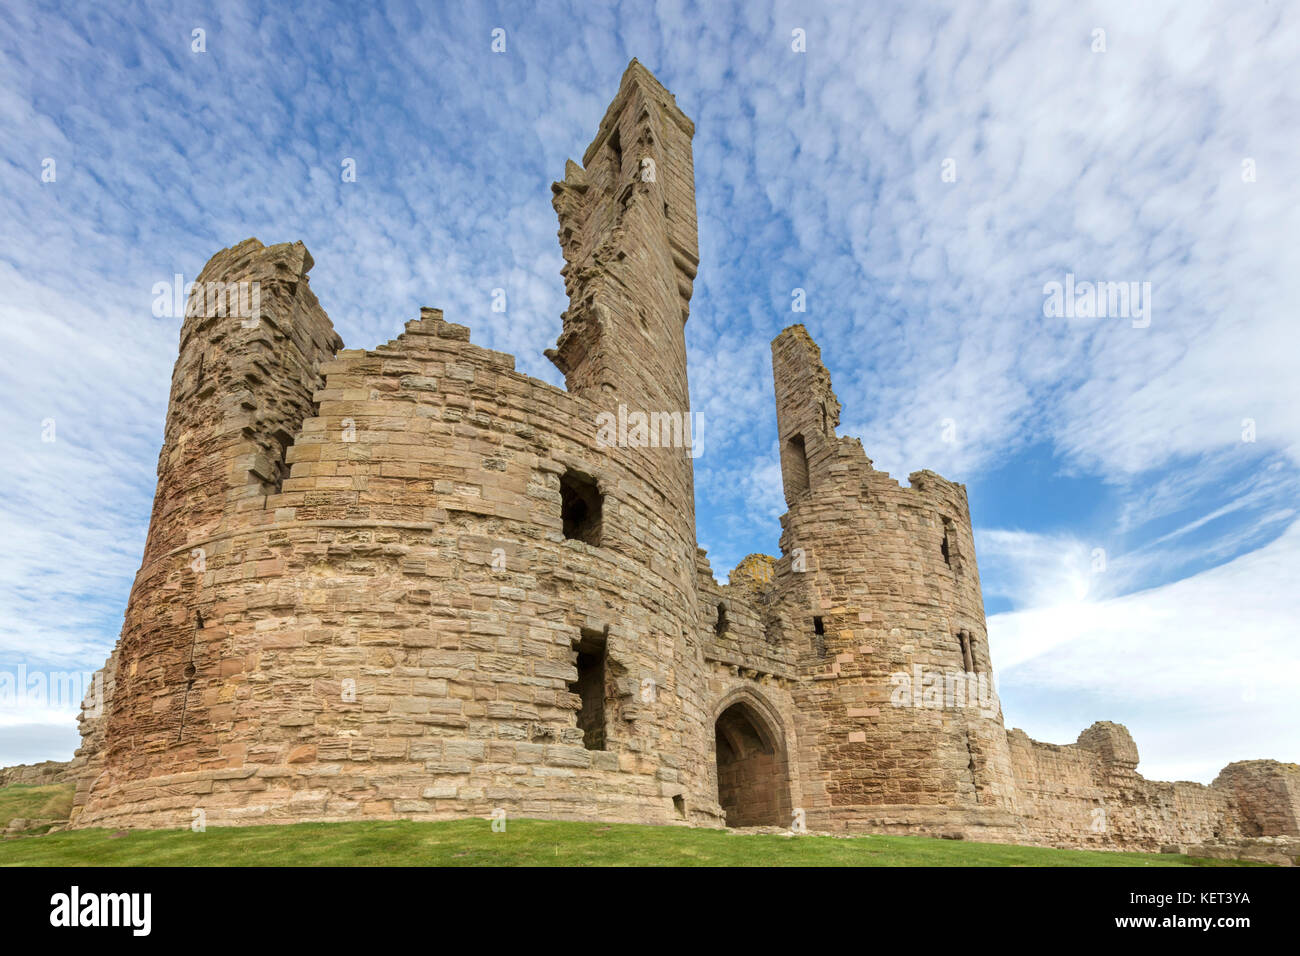 Château de Dunstanburgh sur la côte de Northumbrie, England, UK Photo Stock